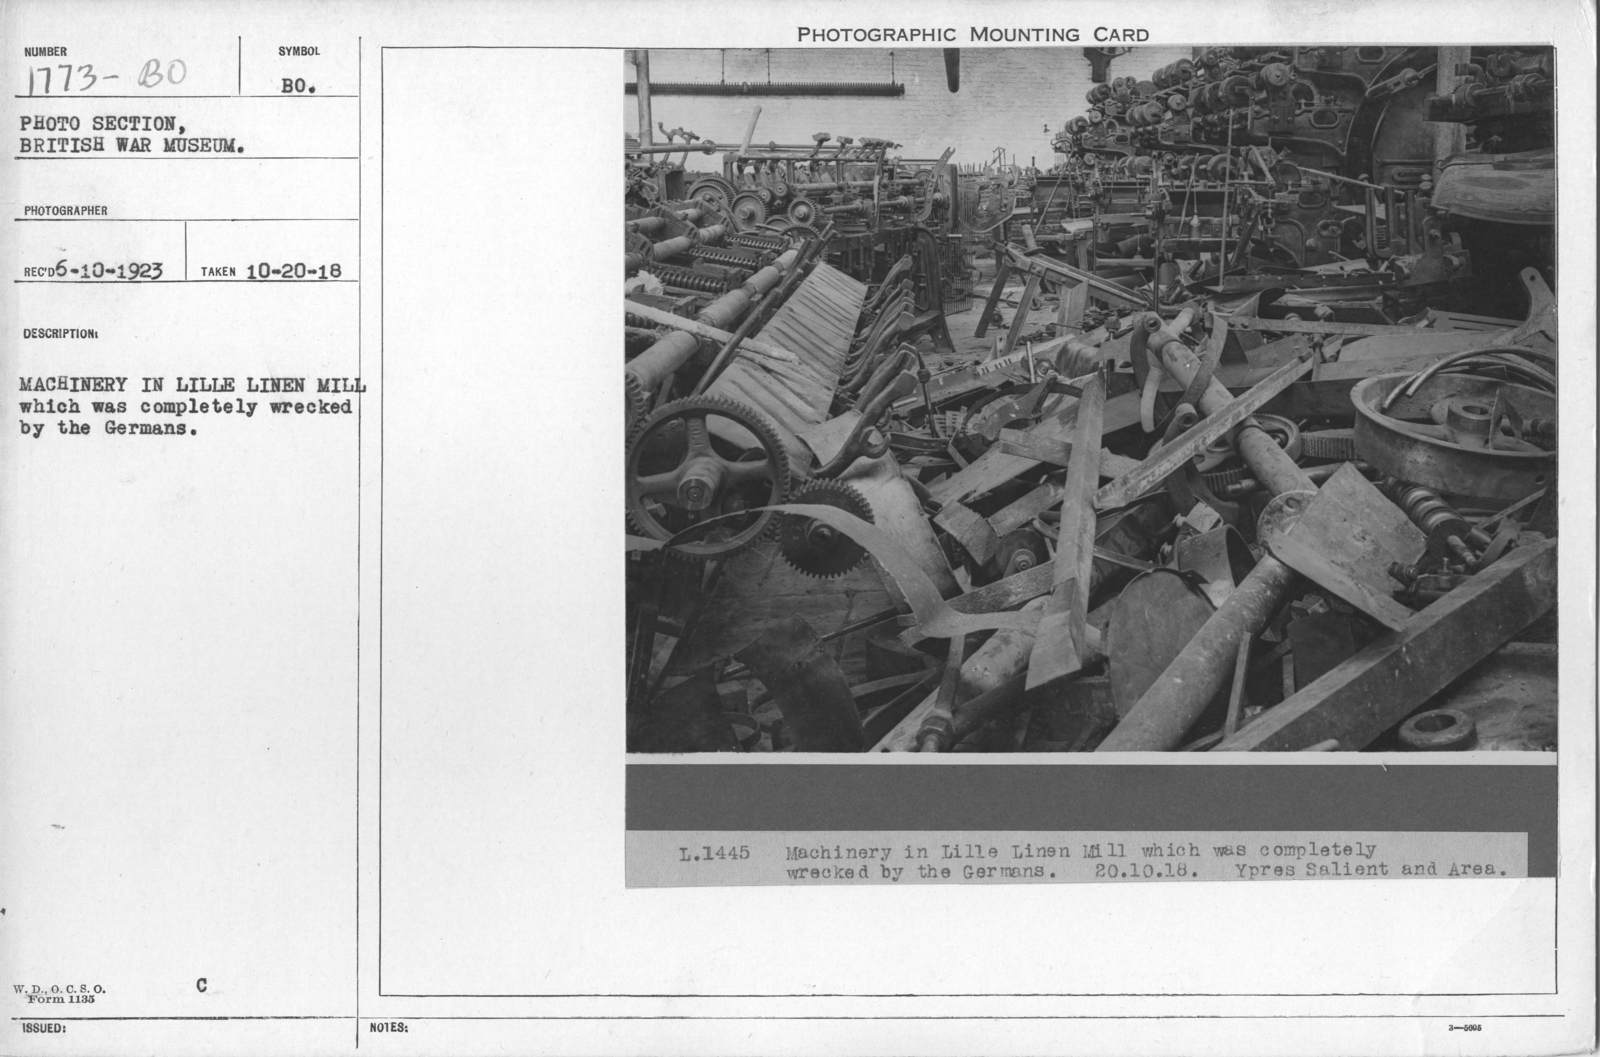 Machinery in Lille linen mill which was completely wrecked by the Germans